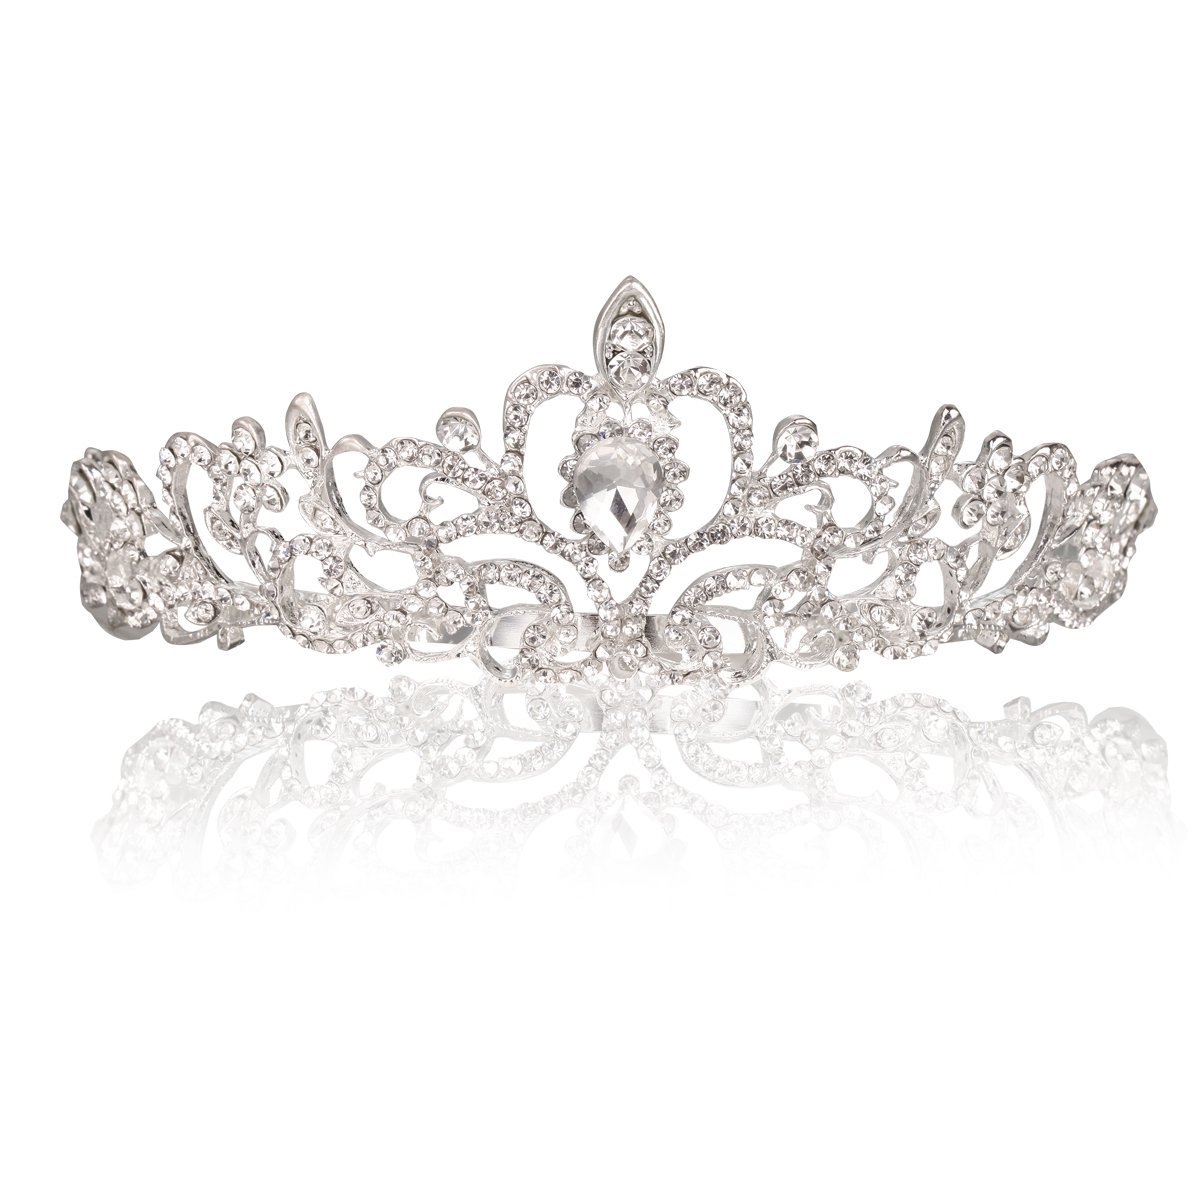 Highly Rated Makone Crystal Crowns And Tiaras